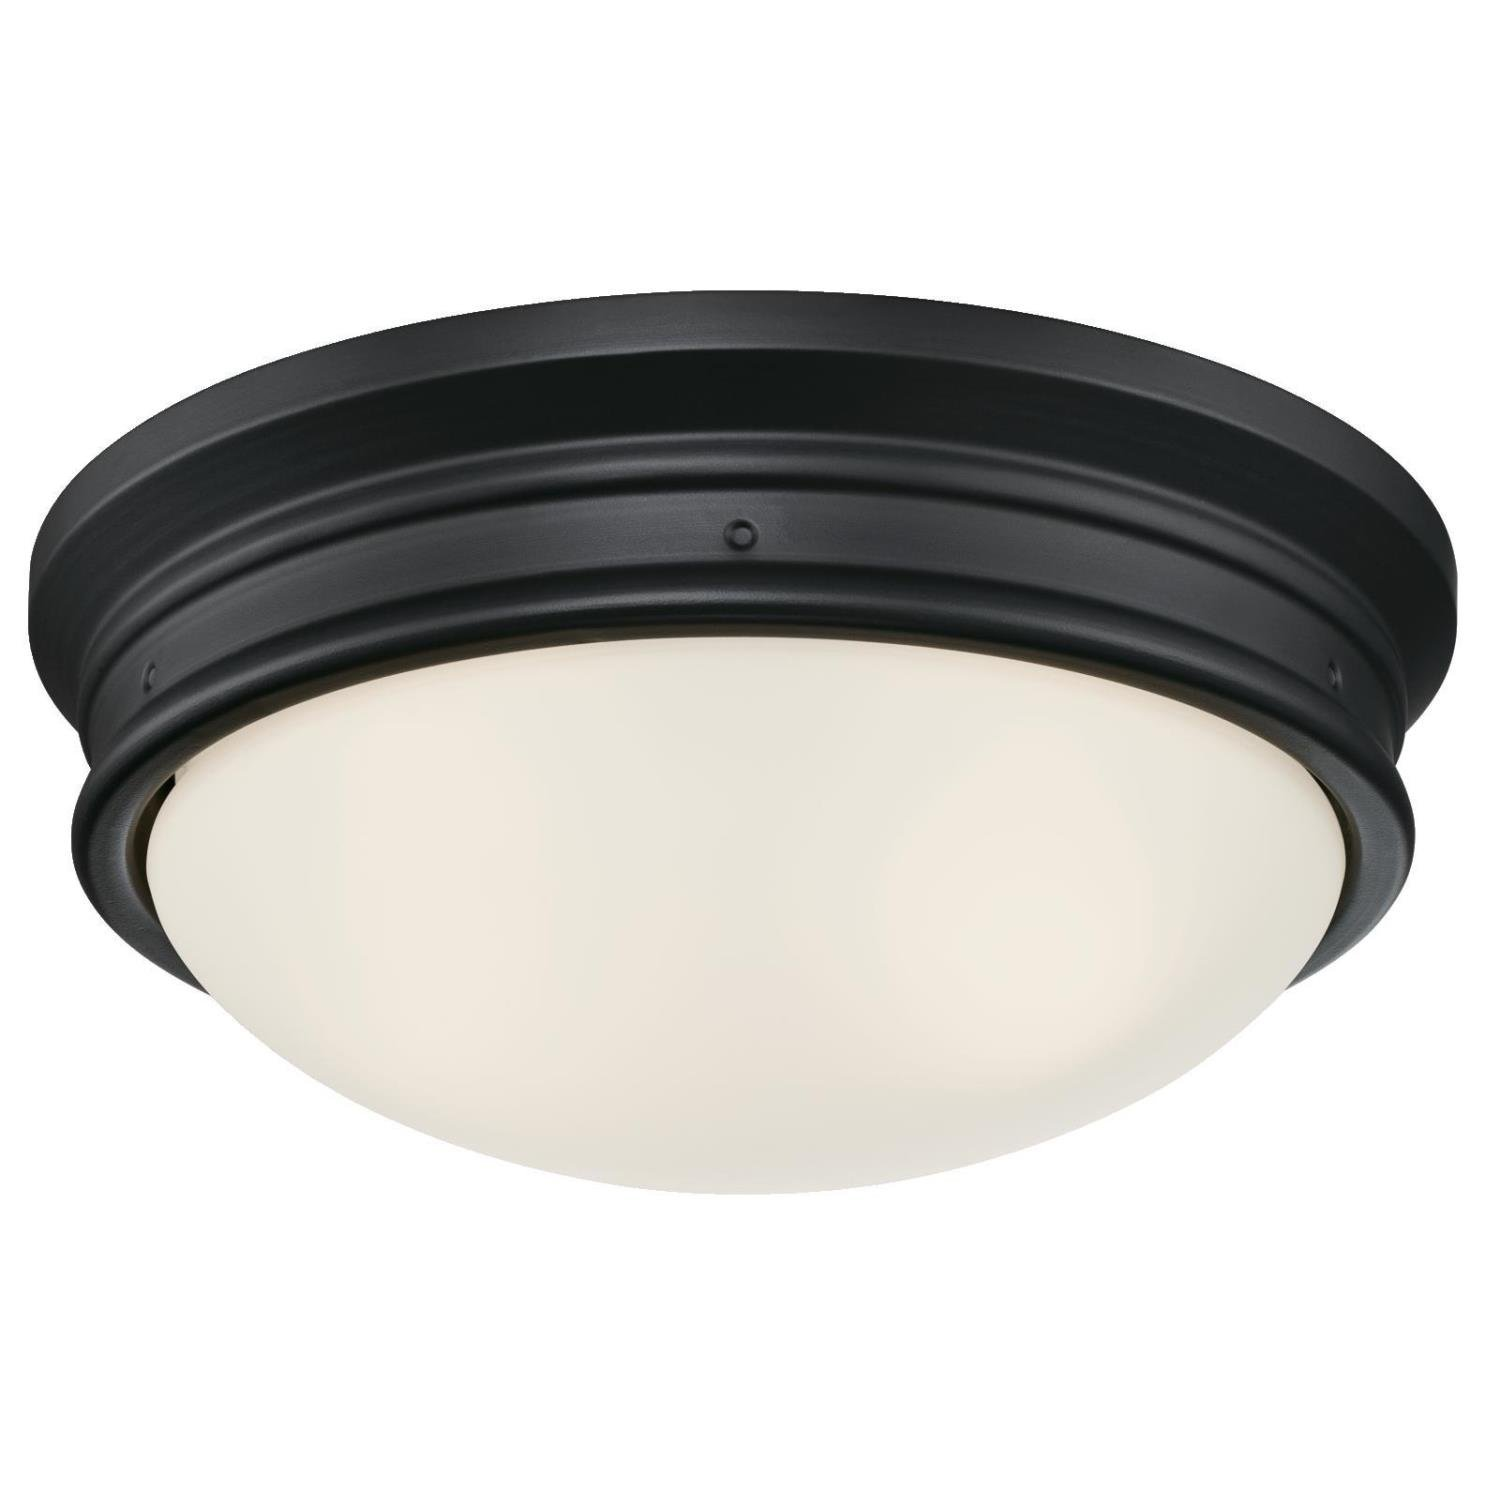 Westinghouse 6324100 Meadowbrook Two-Light Indoor Flush-Mount Ceiling Fixture, Matte Black Finish with Frosted Glass